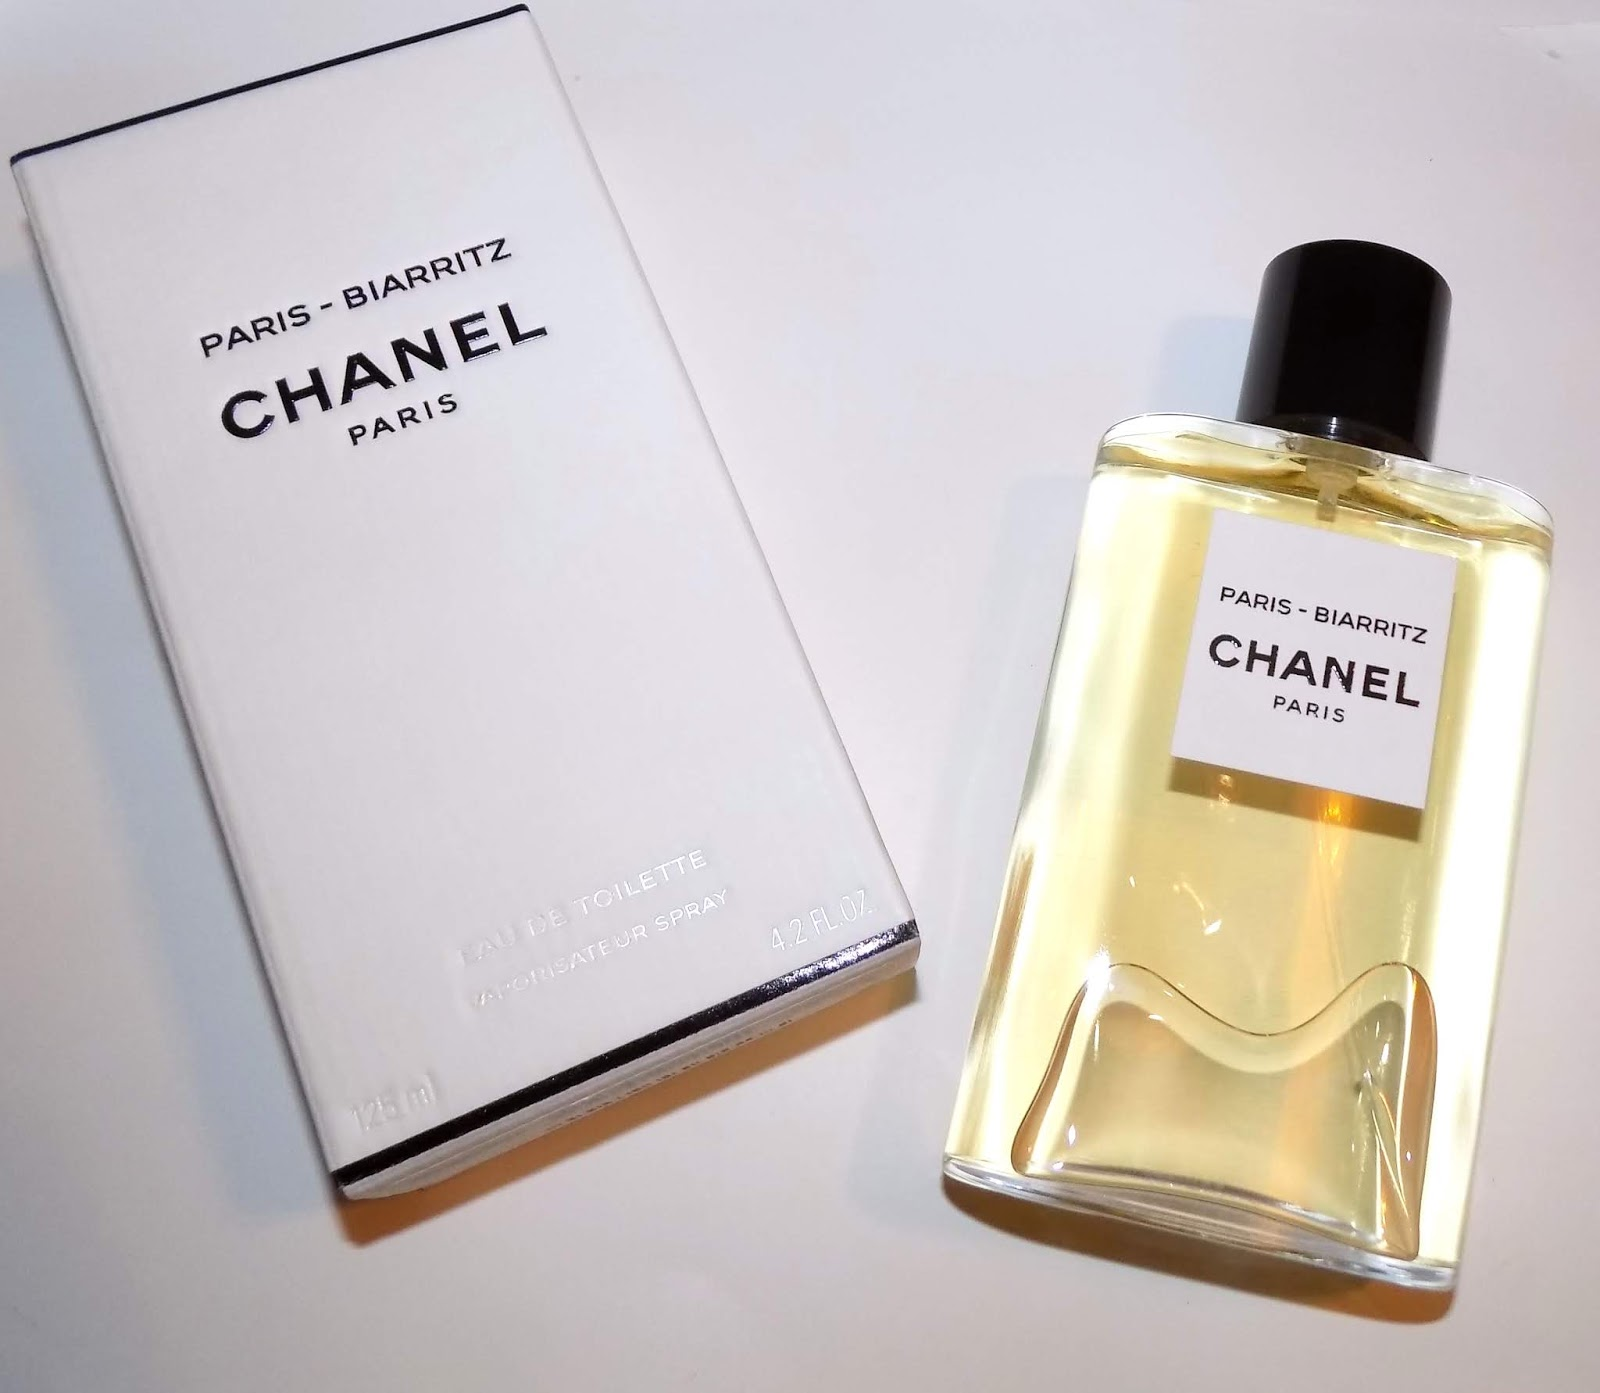 834c3f359d The Beauty Alchemist: Chanel Paris- Biarritz EDT - Les Eaux de Chanel